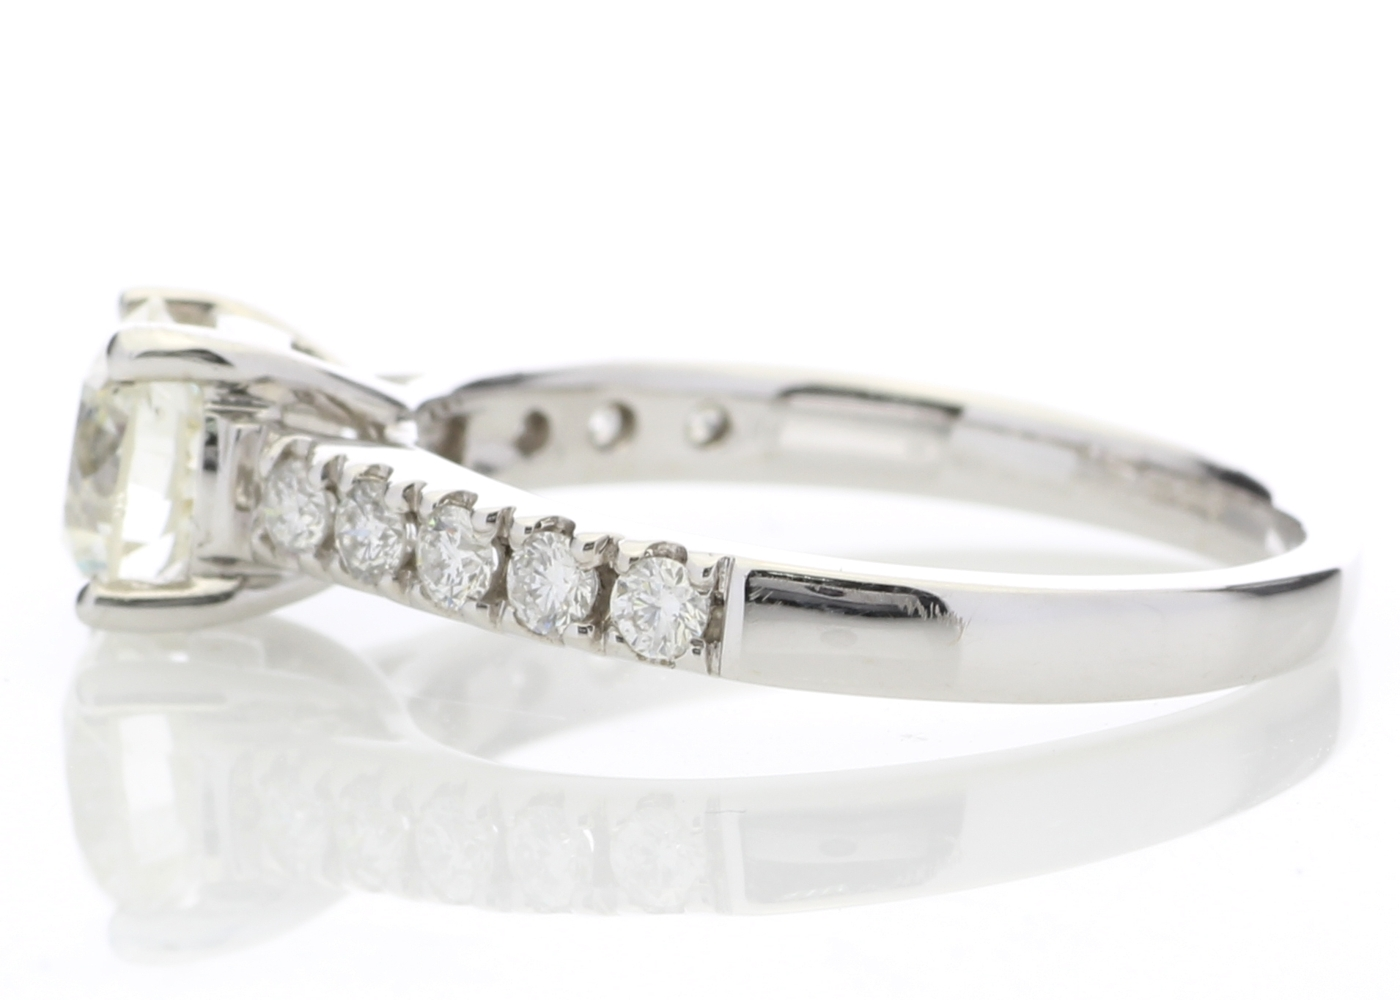 18ct White Gold Single Stone Diamond Ring With Stone Set Shoulders (1.02) 1.32 Carats - Image 3 of 5